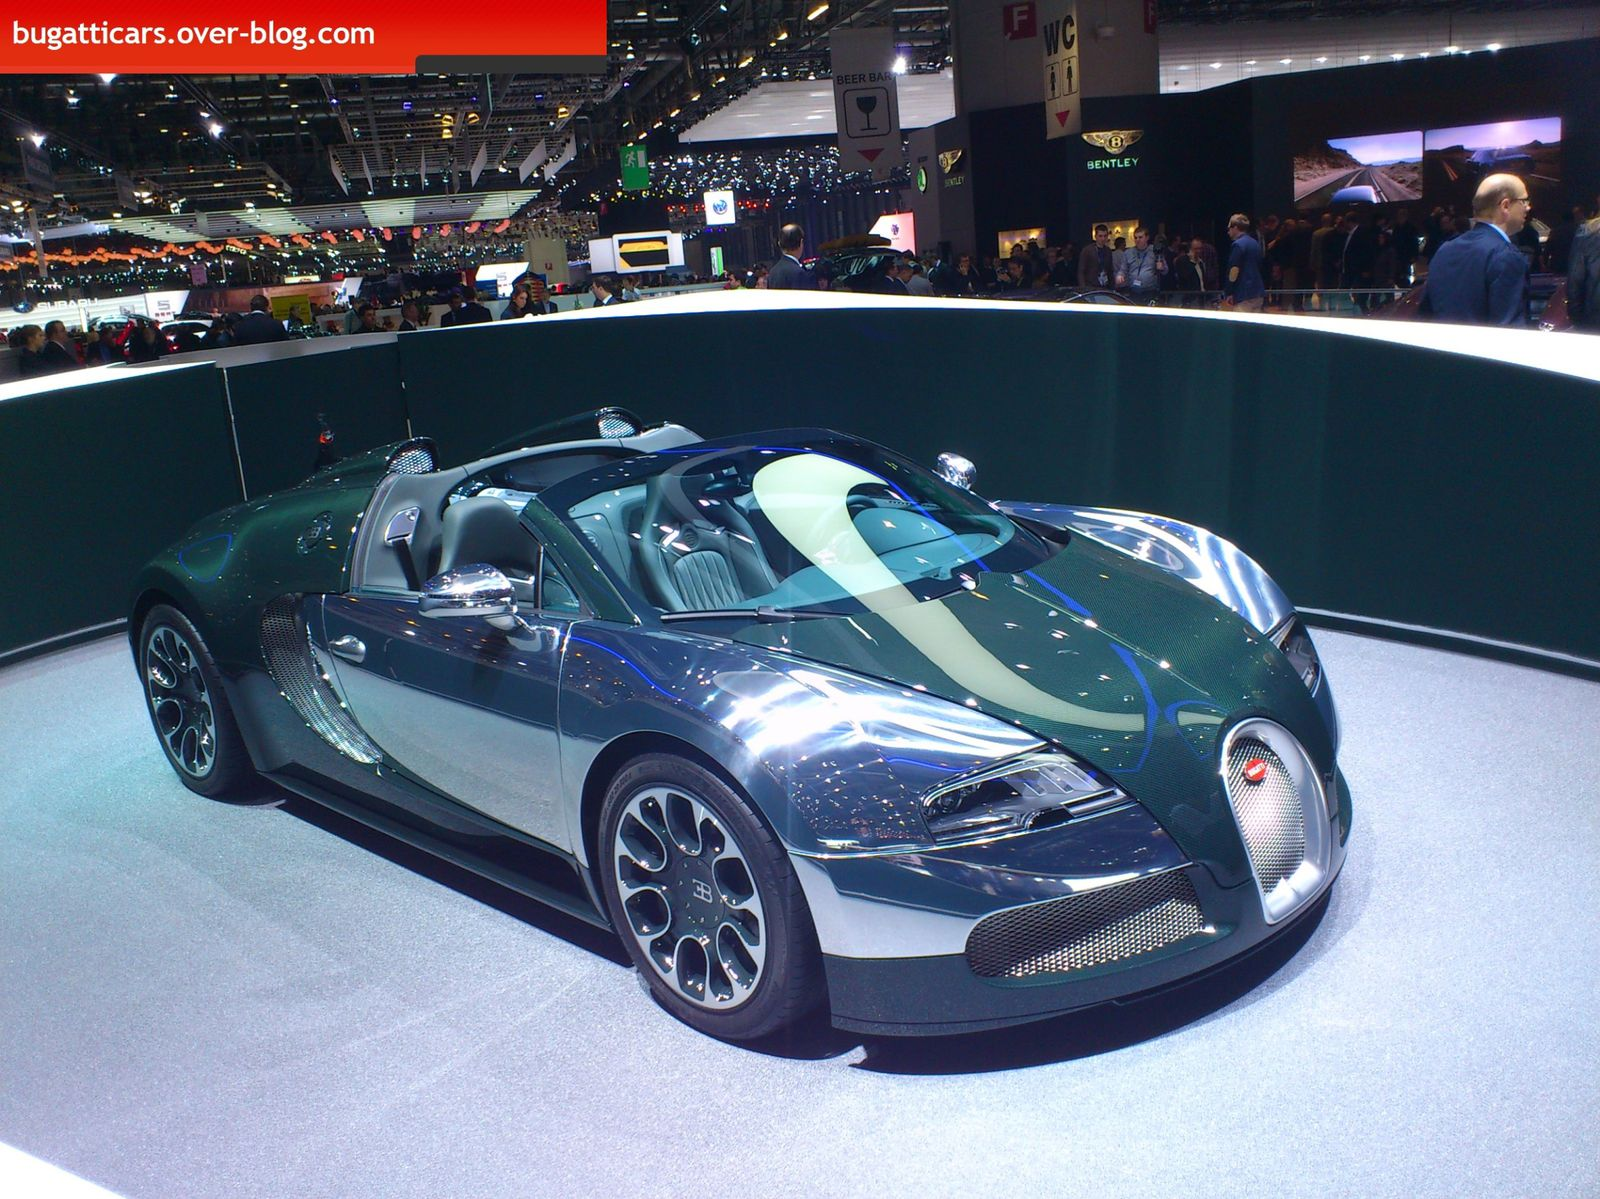 bugatti au salon de l u0026 39 automobile de gen u00e8ve 2013